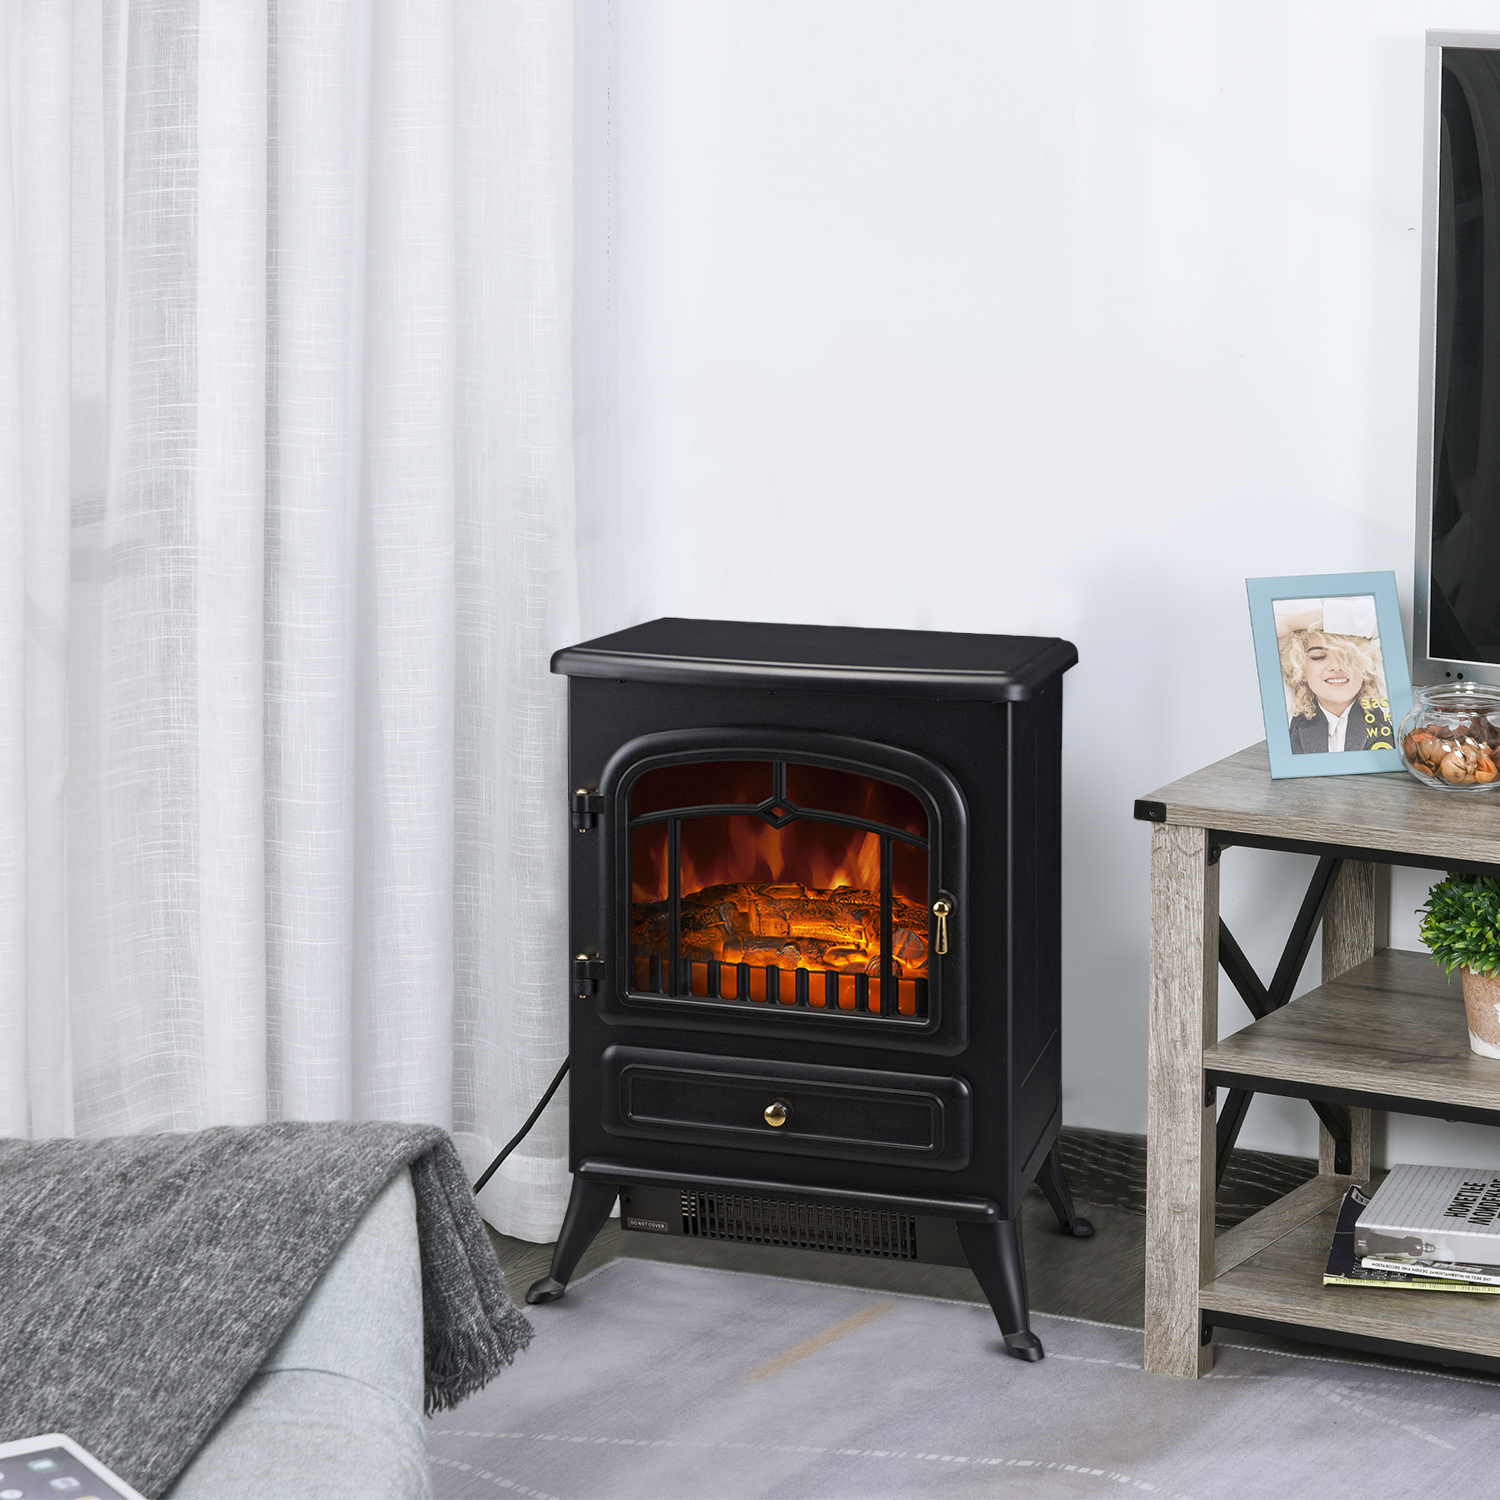 750w 1500w Adjust Electric Fireplace Free Standing Heater Wood Fire Flame Stove 603161409714 Ebay